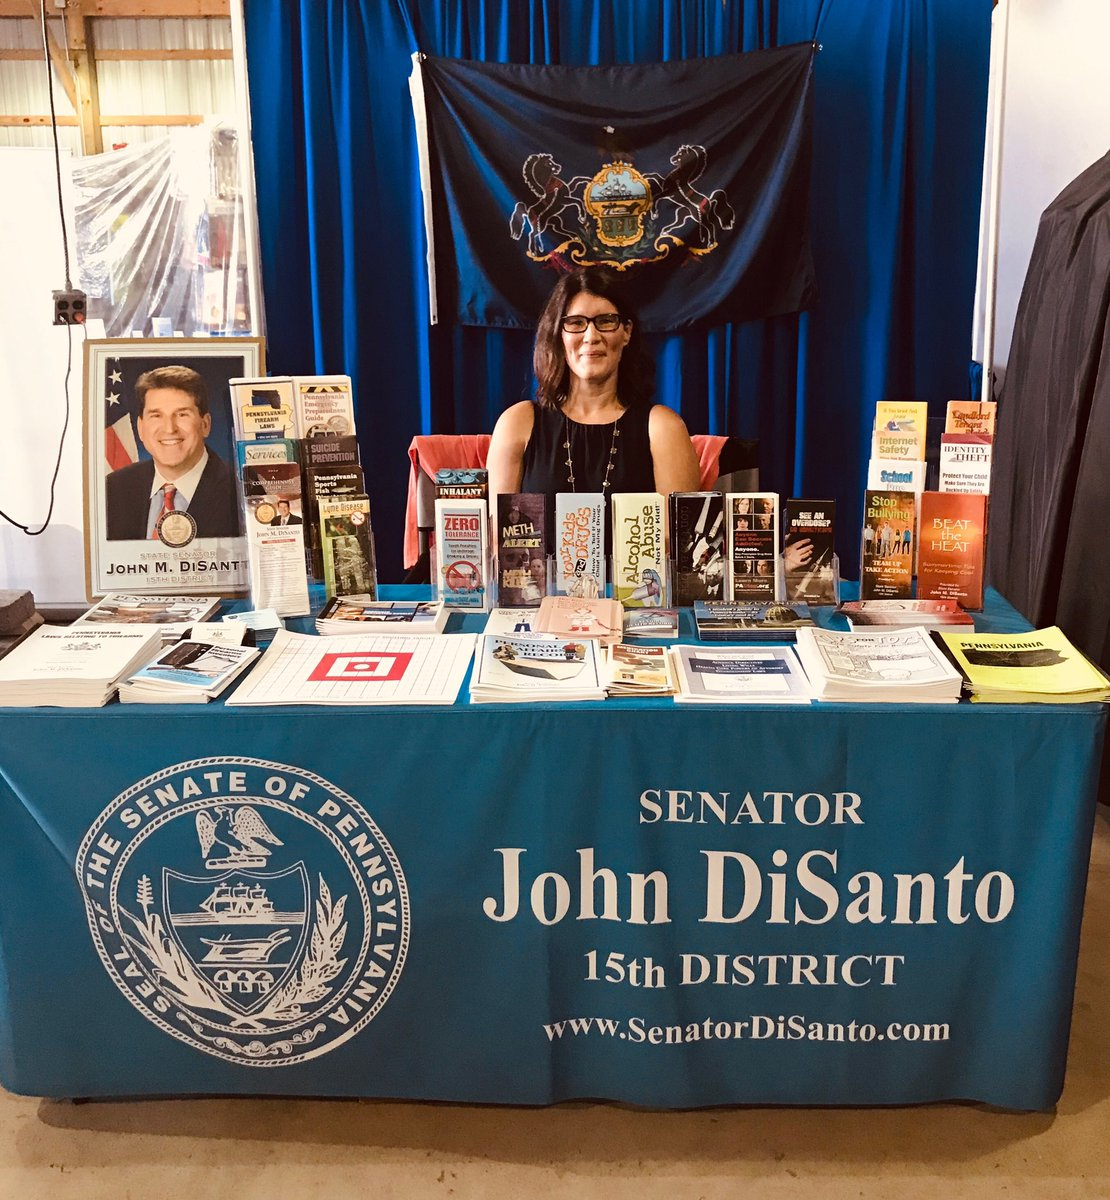 Stop by and visit my booth at the Perry County Fair (pecofair.org) all week!